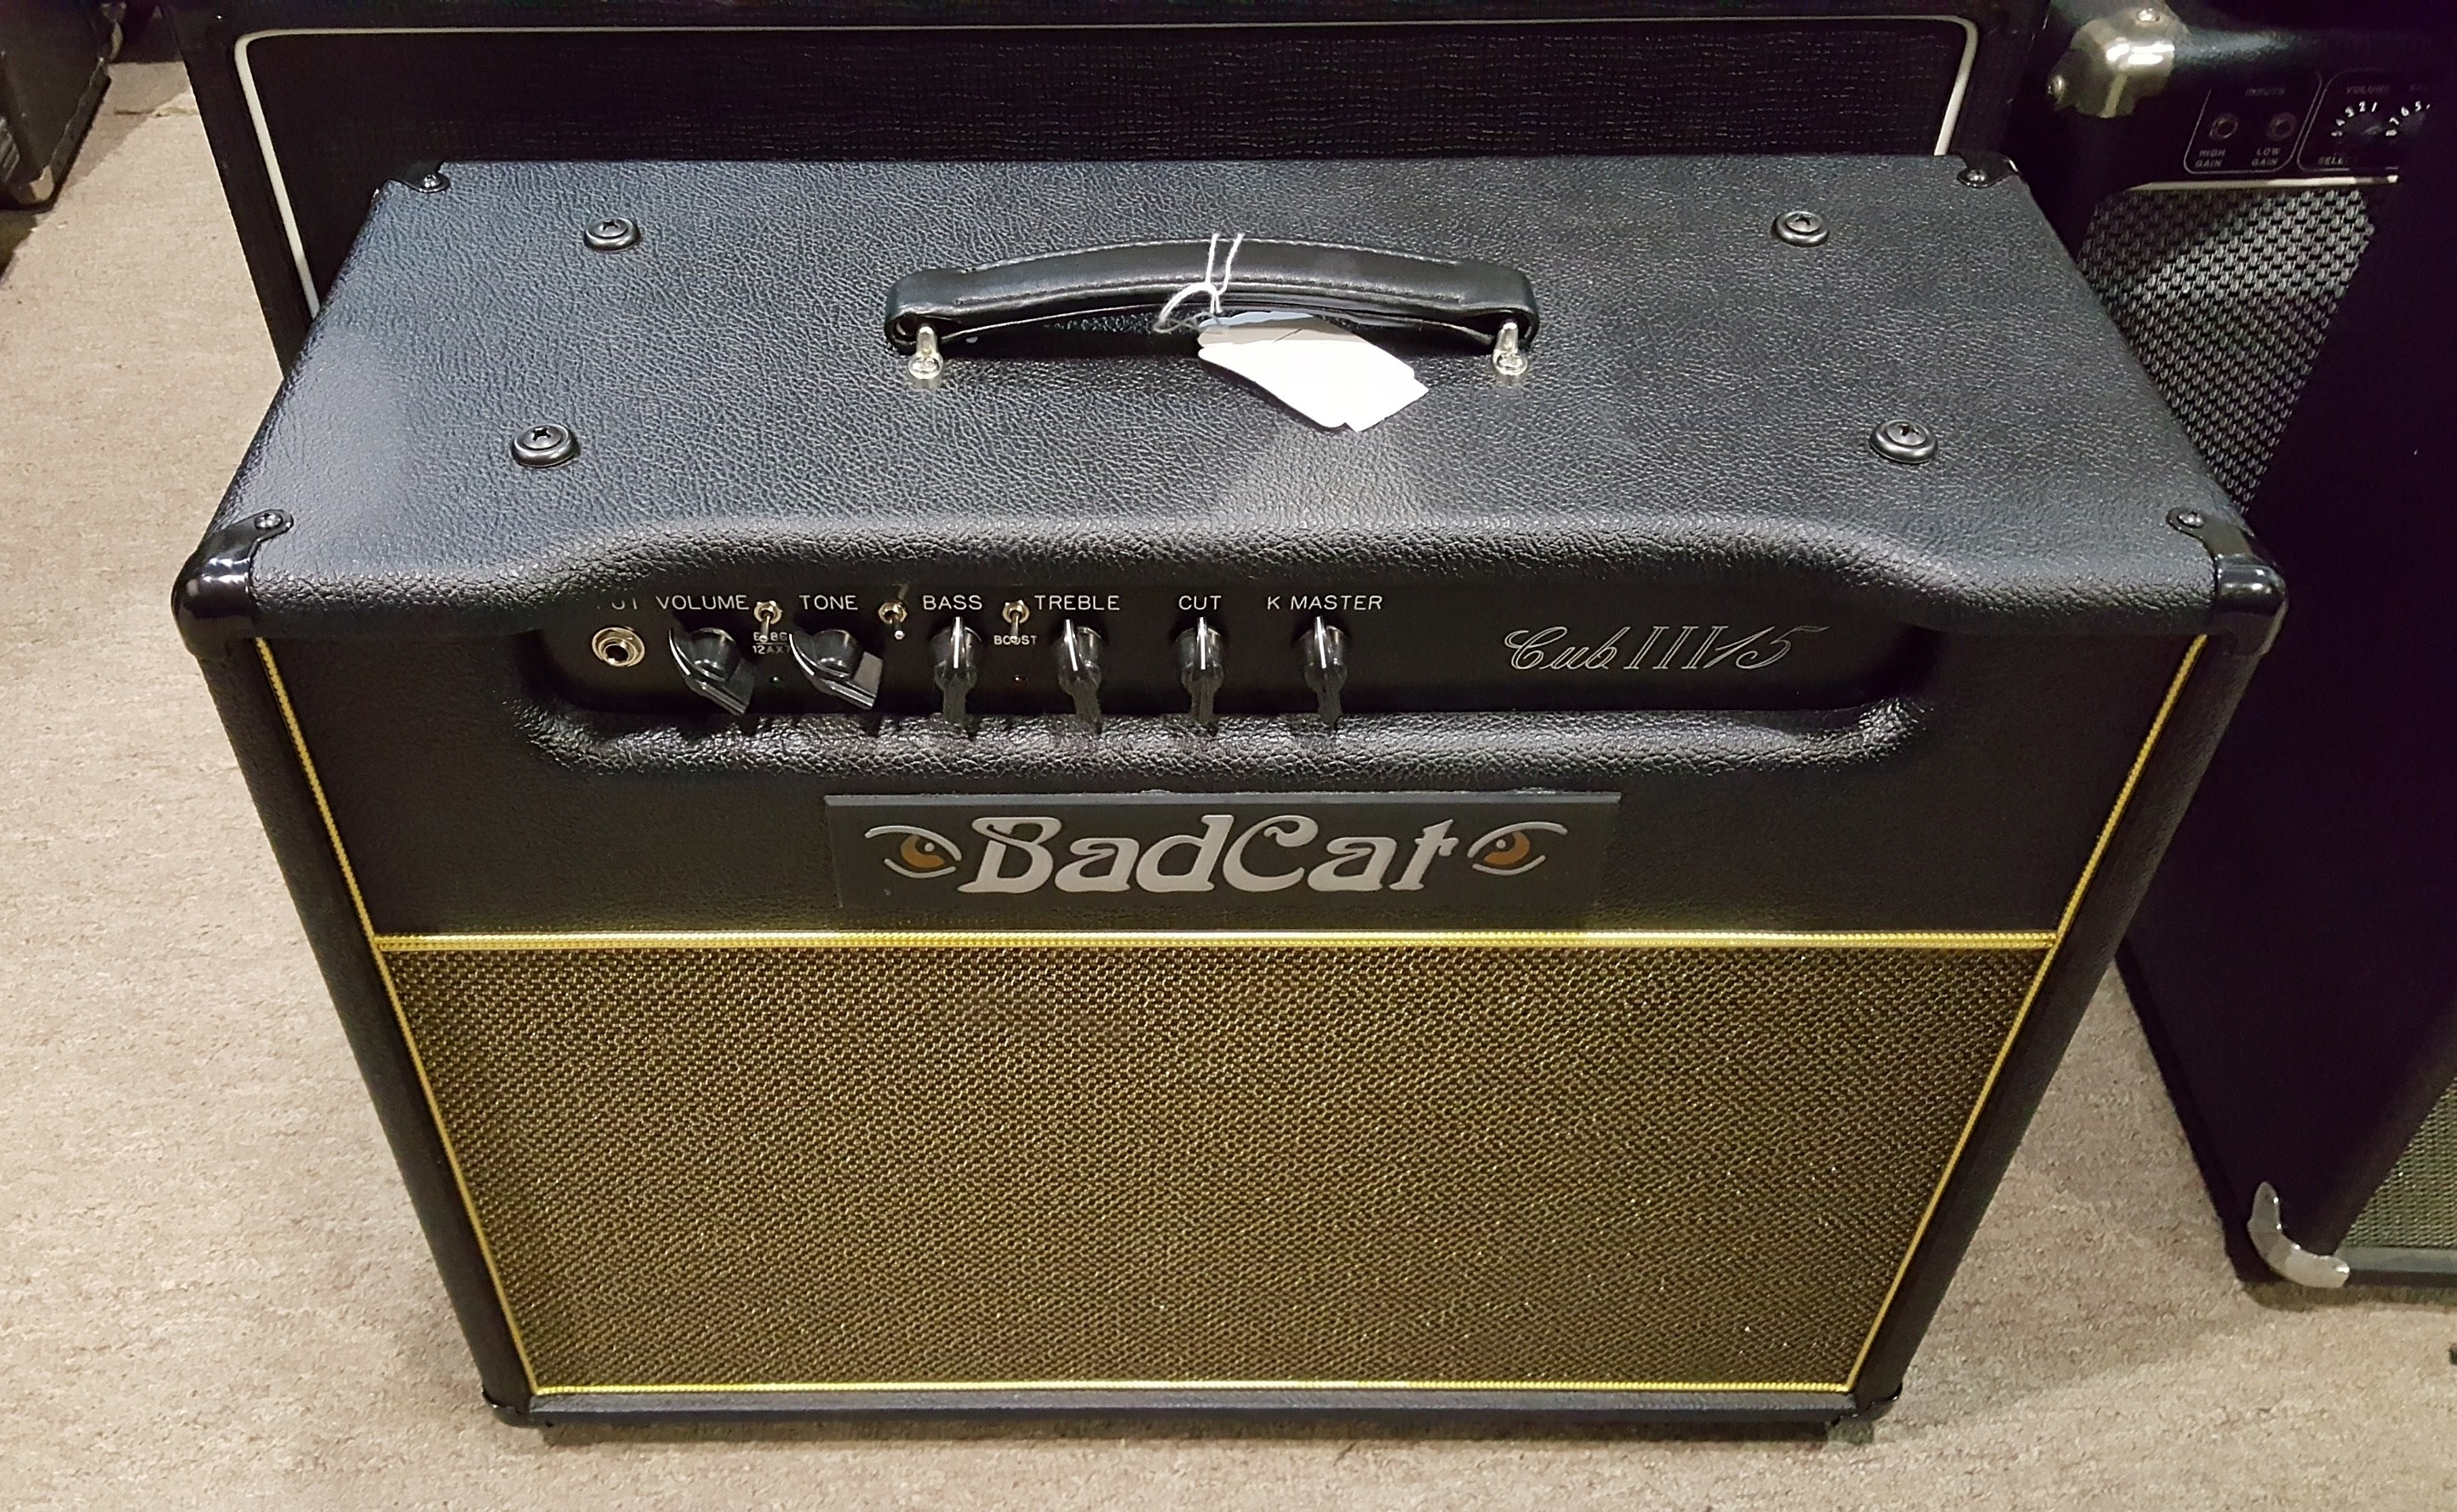 BAD CAT CUB III 15 15-WATT HANDWIRED 1X12 TUBE GUITAR COMBO AMP